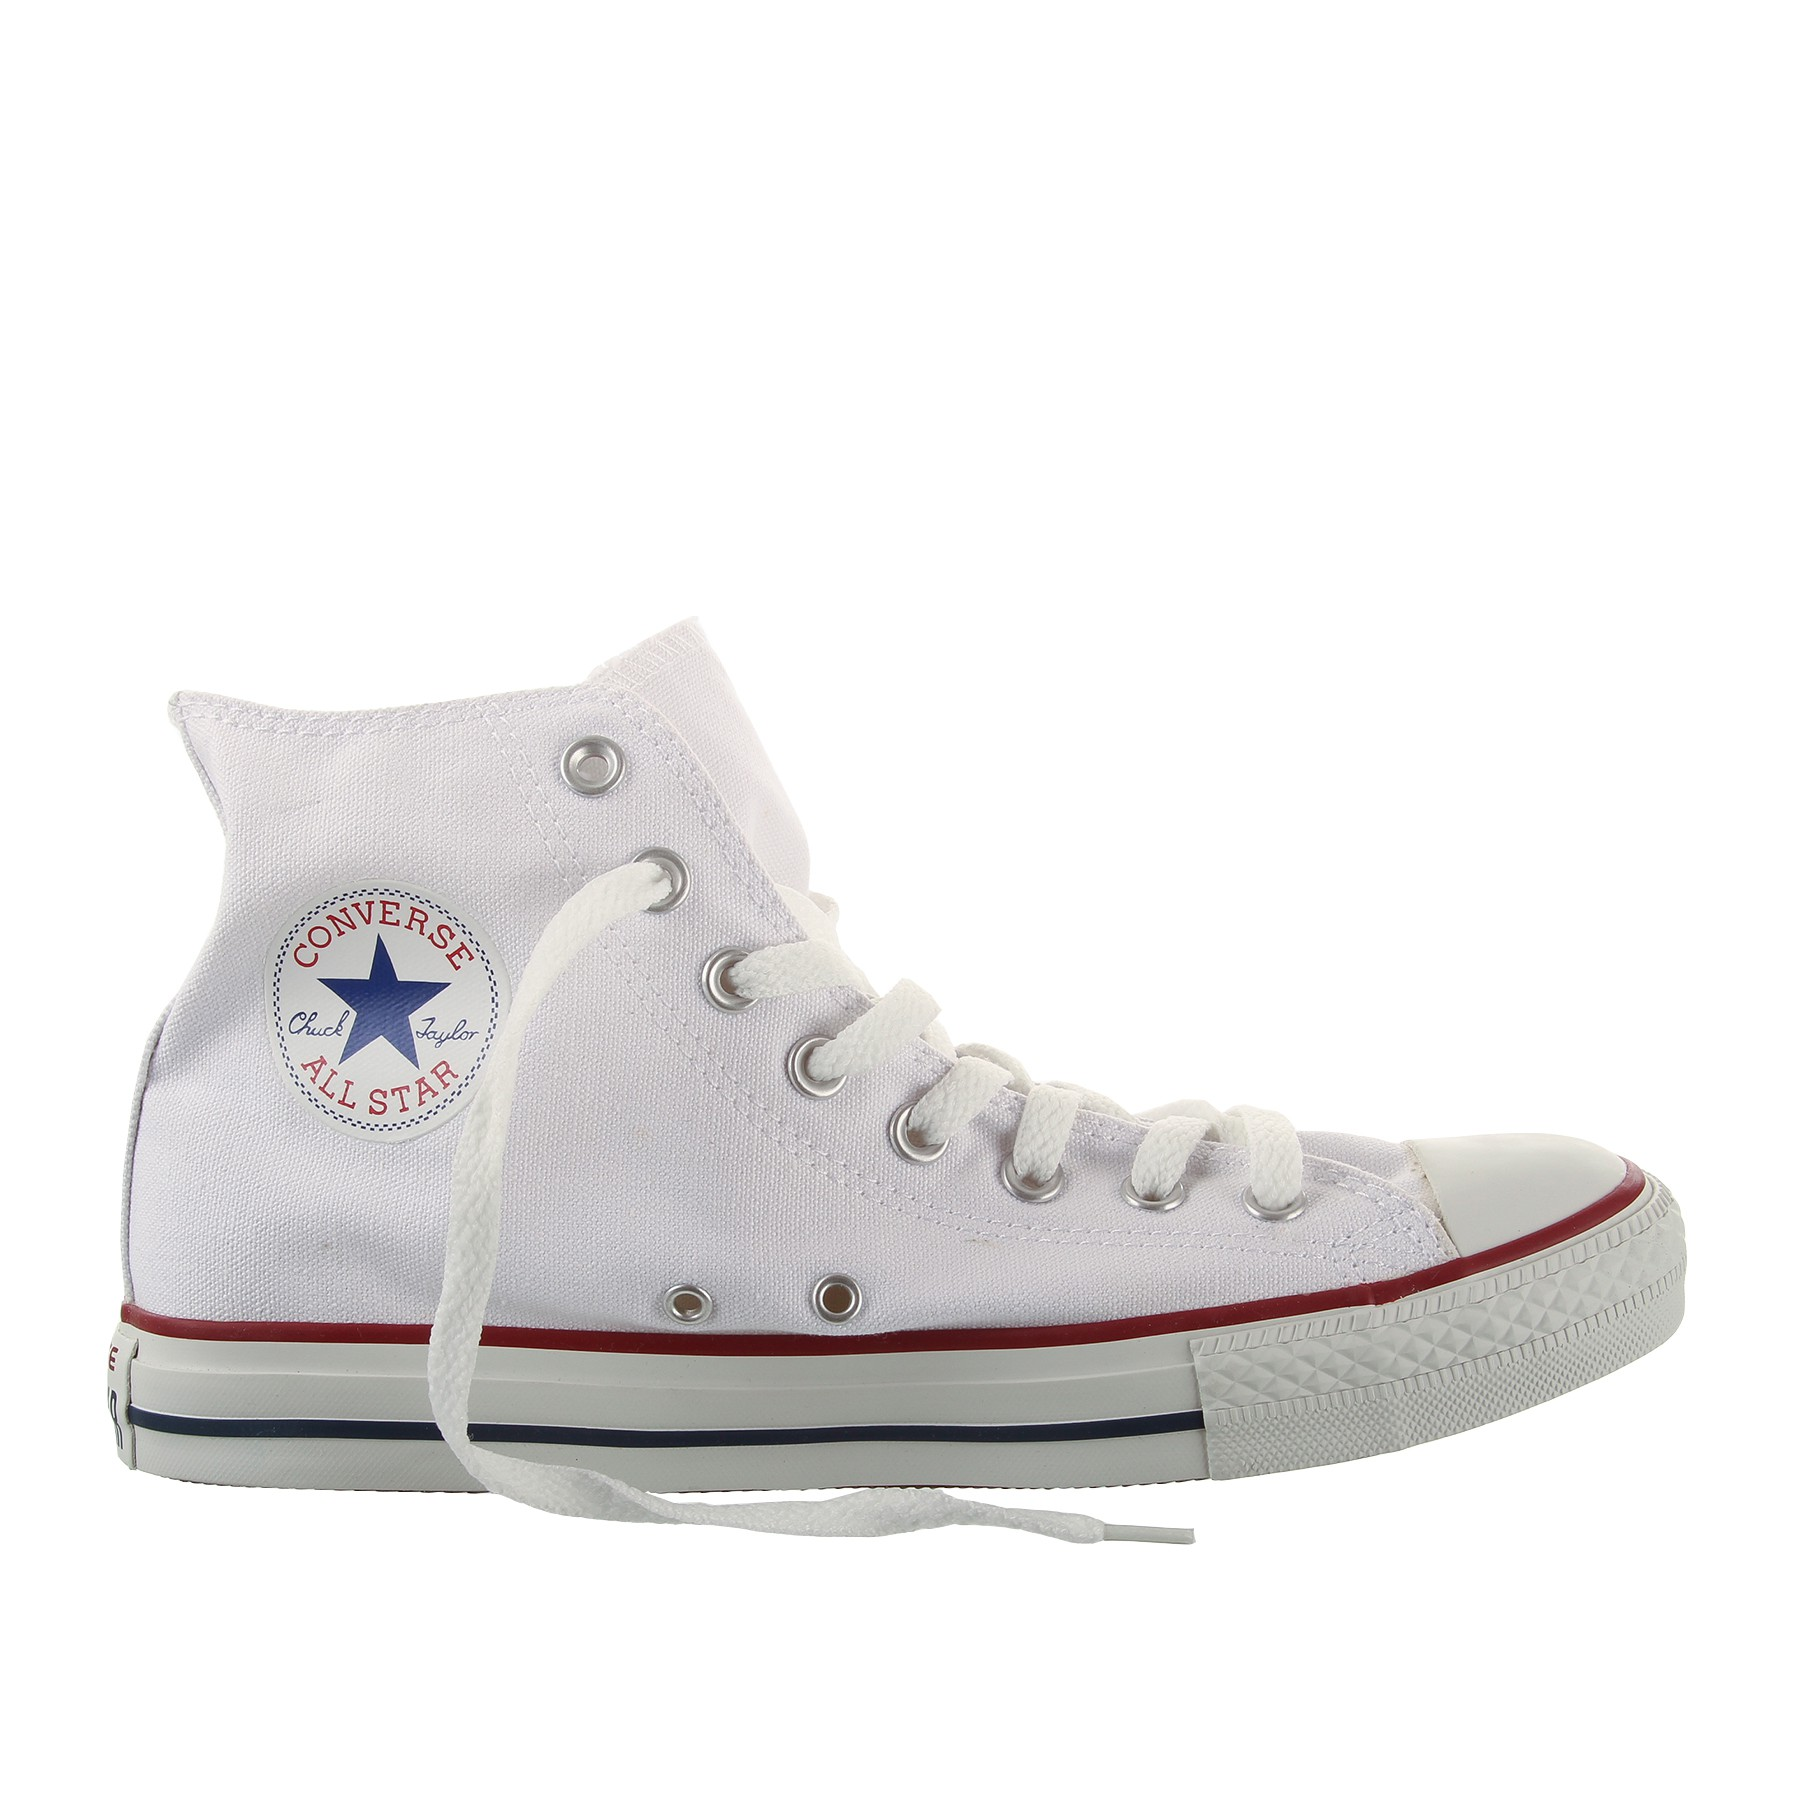 M7650 CT CHUCK TAYLOR AS CORE/OPTICAL WHITE Bild https://cdn03.plentymarkets.com/zsy4vjx32p87/item/images/4289/full/M7650-ama-03.JPG